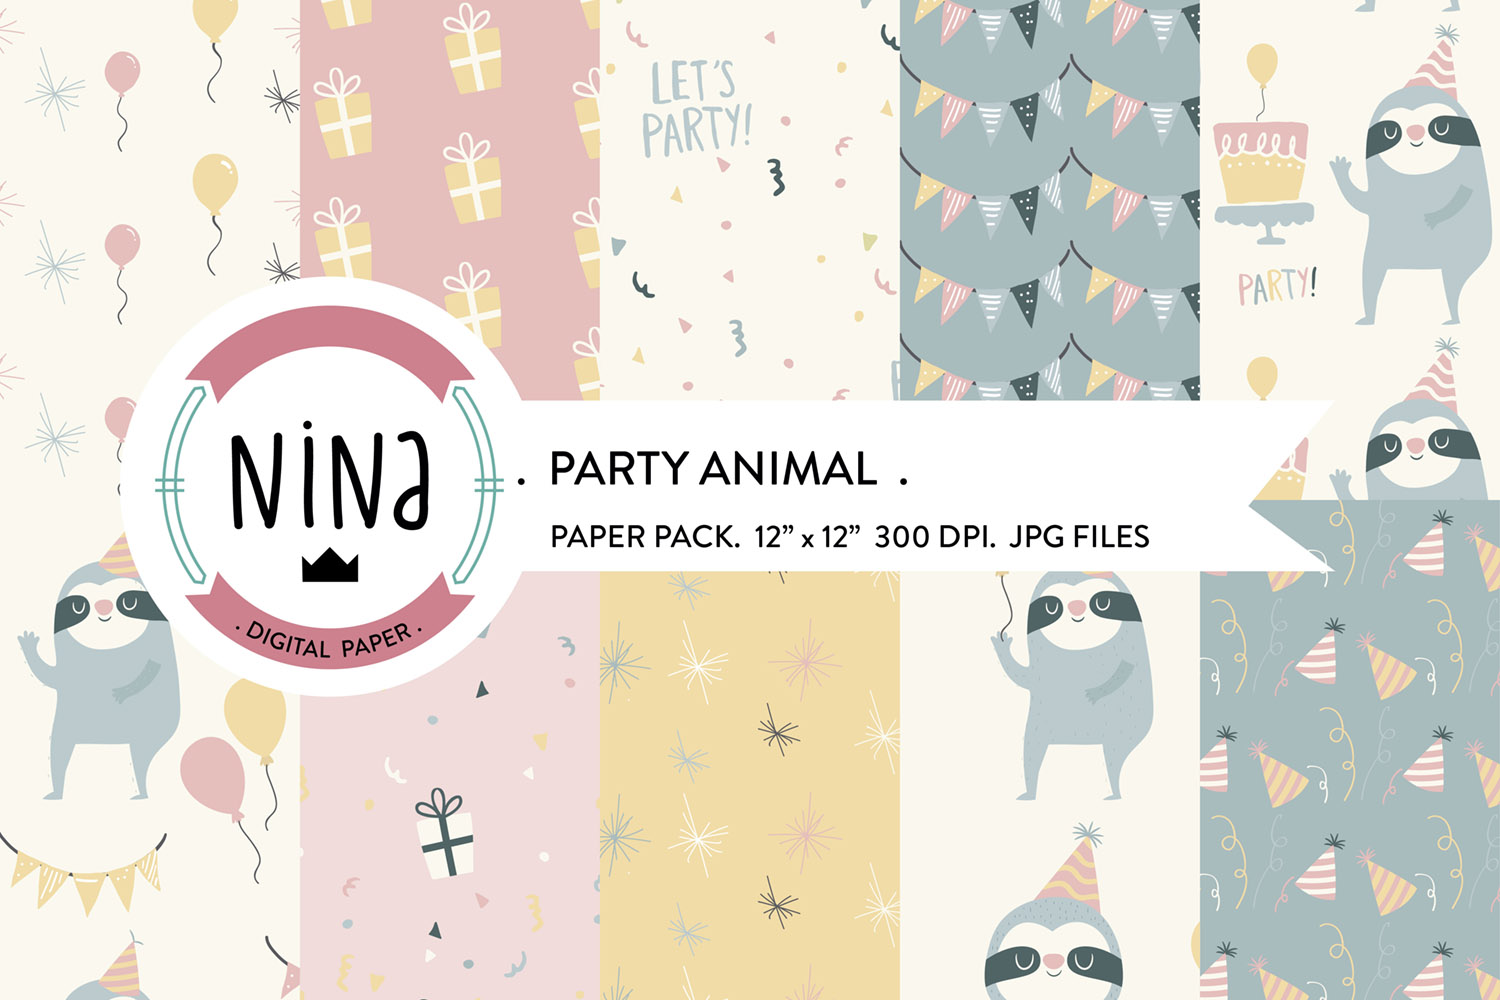 Party animal digital paper, confetti pattern, baloon pattern example image 1